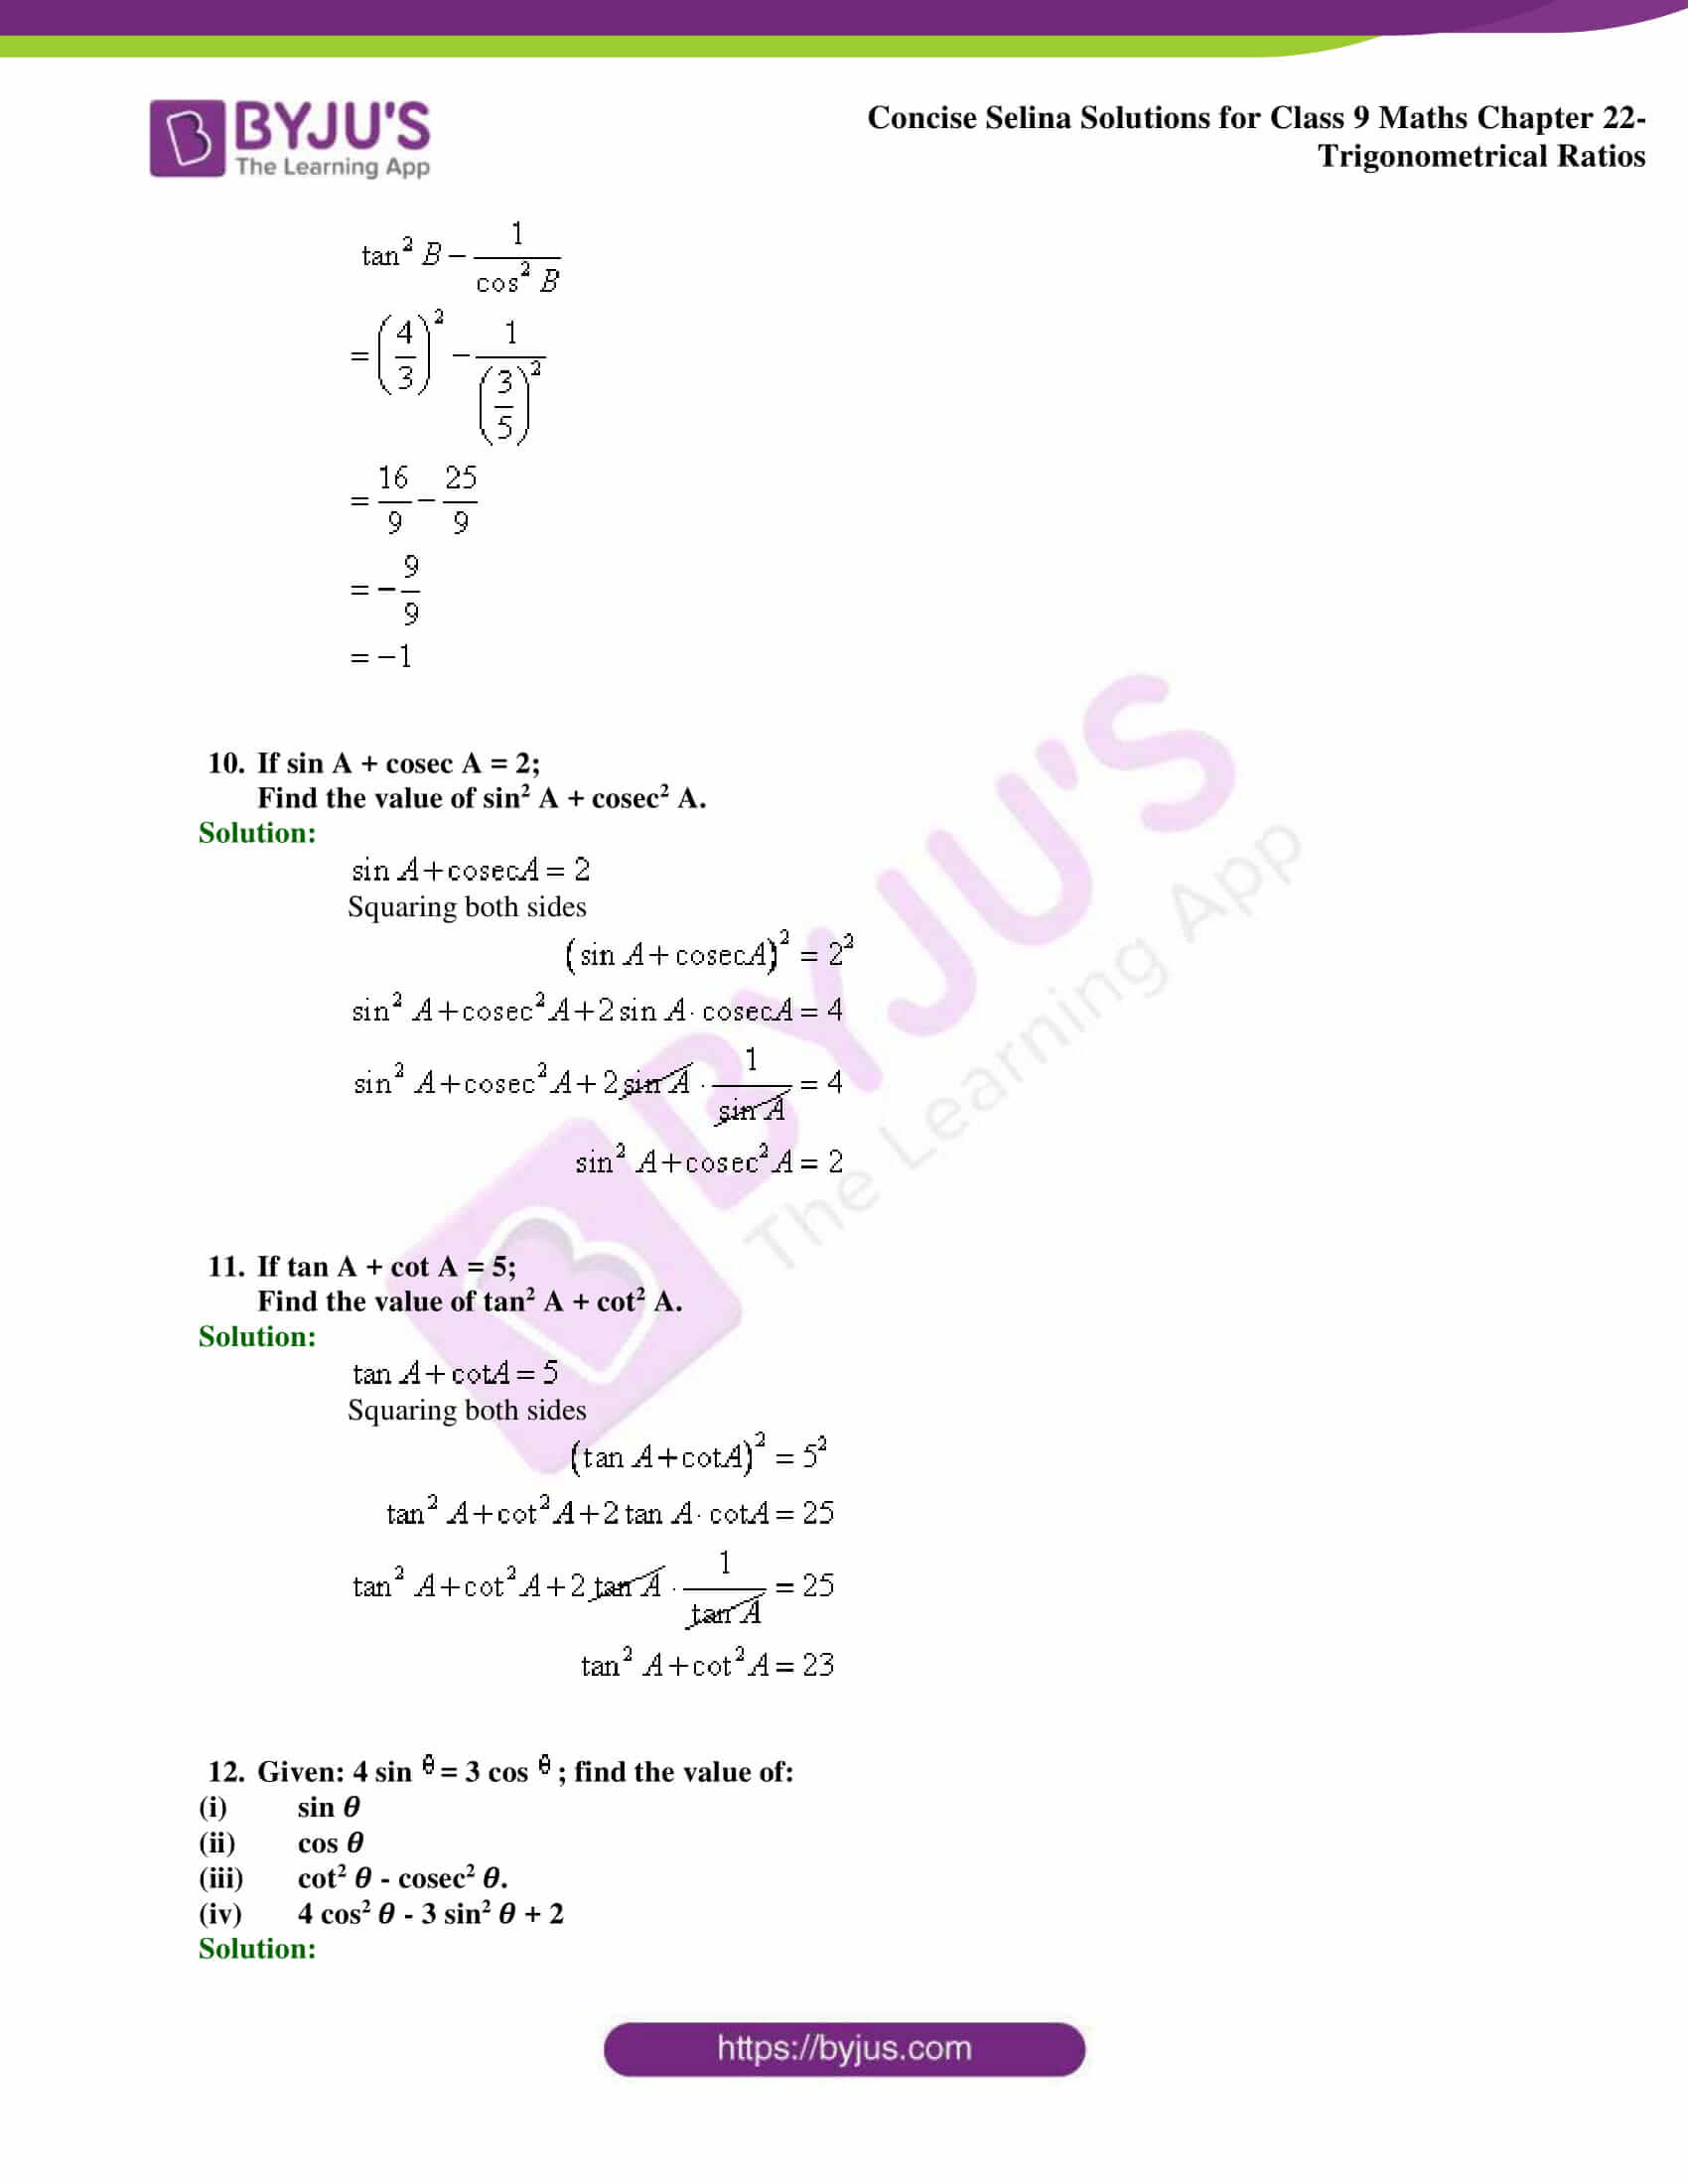 Concise Selina Solutions Class 9 Maths Chapter 22 Trigonometrical Ratios part 33